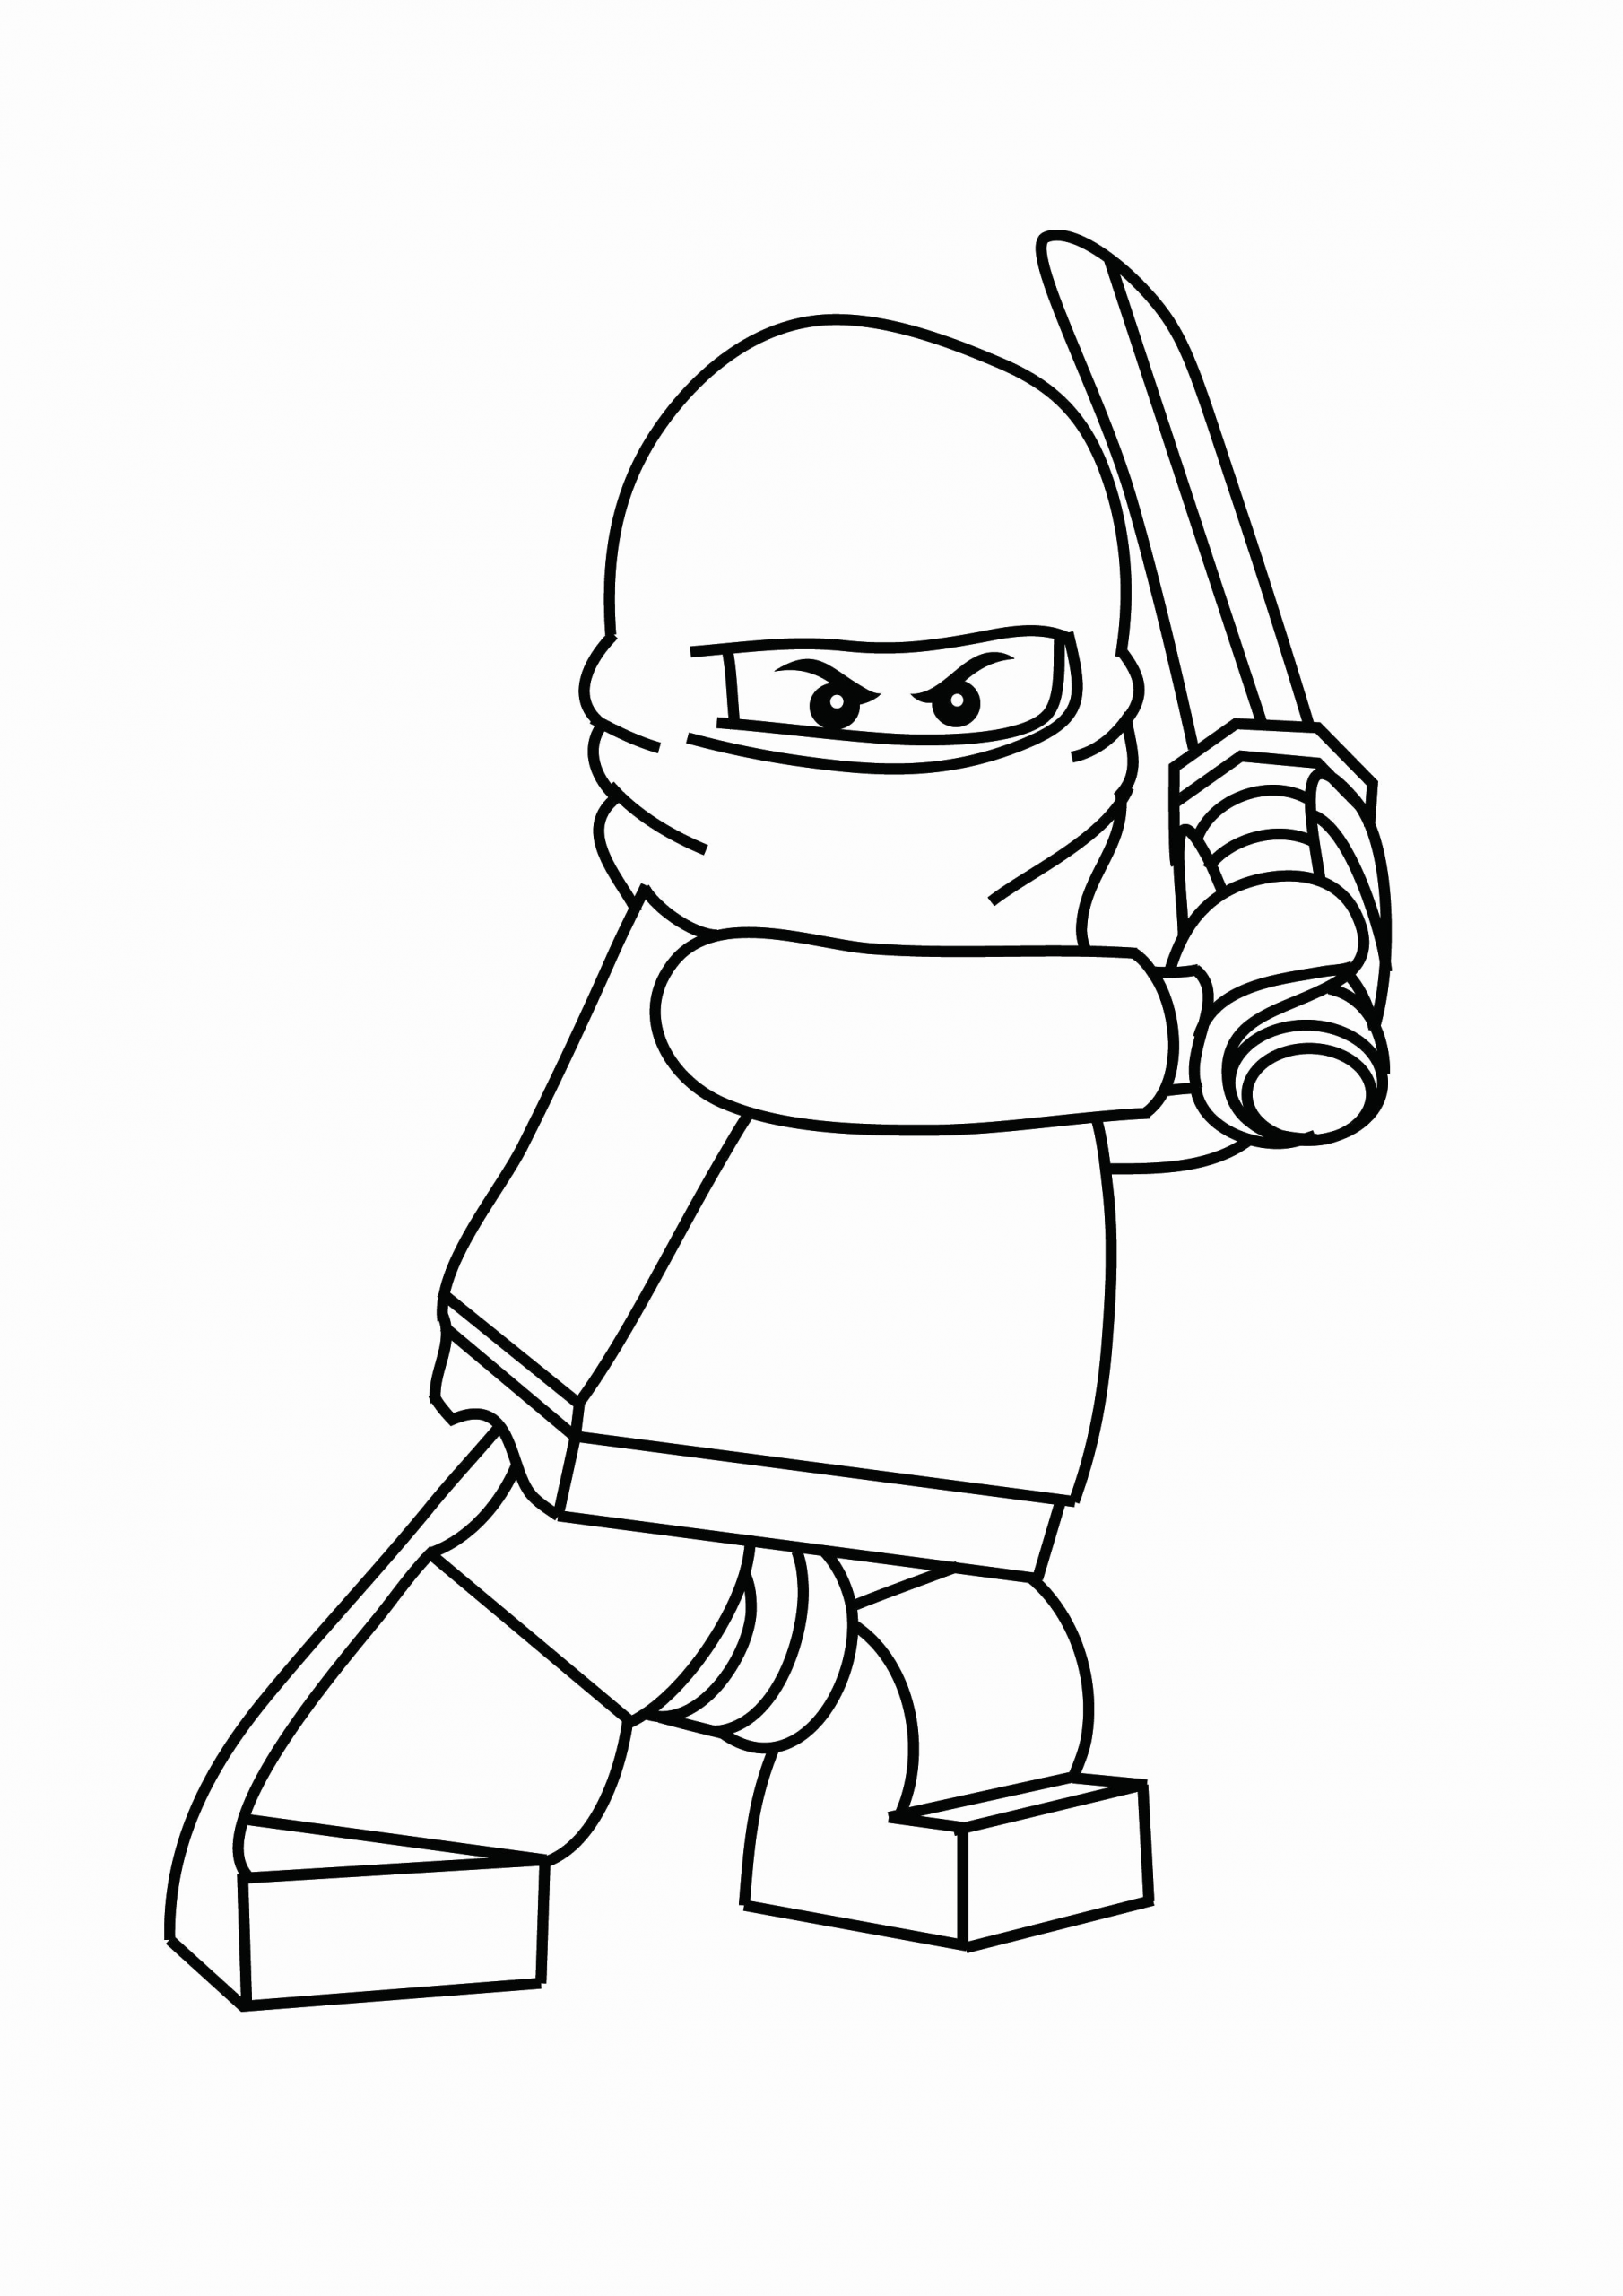 Kids Coloring Pages Lego Ninjago Ninjago Coloring Pages Lego Coloring Pages Lego Movie Coloring Pages